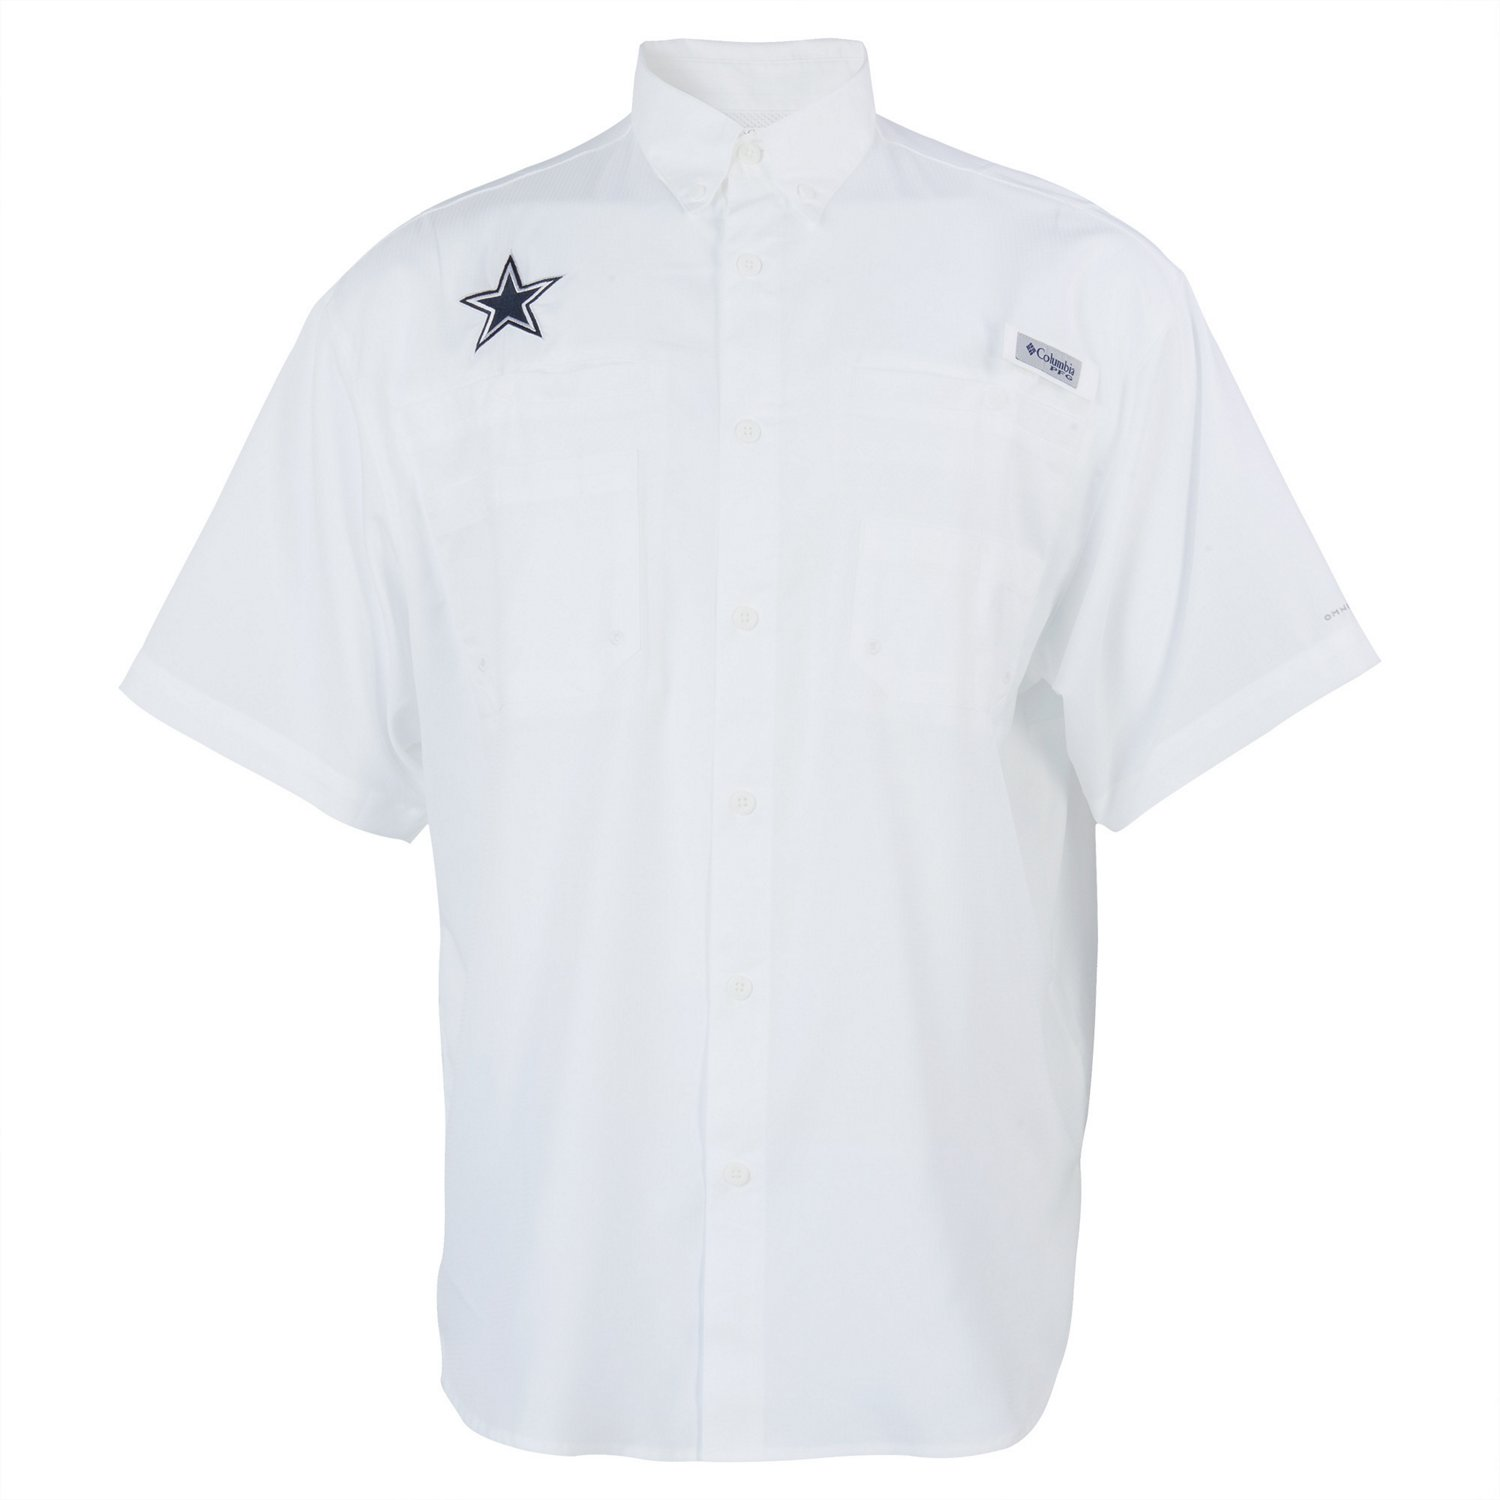 Dallas Cowboys Gear Dallas Cowboys Shop Dallas Cowboys Fan Gear